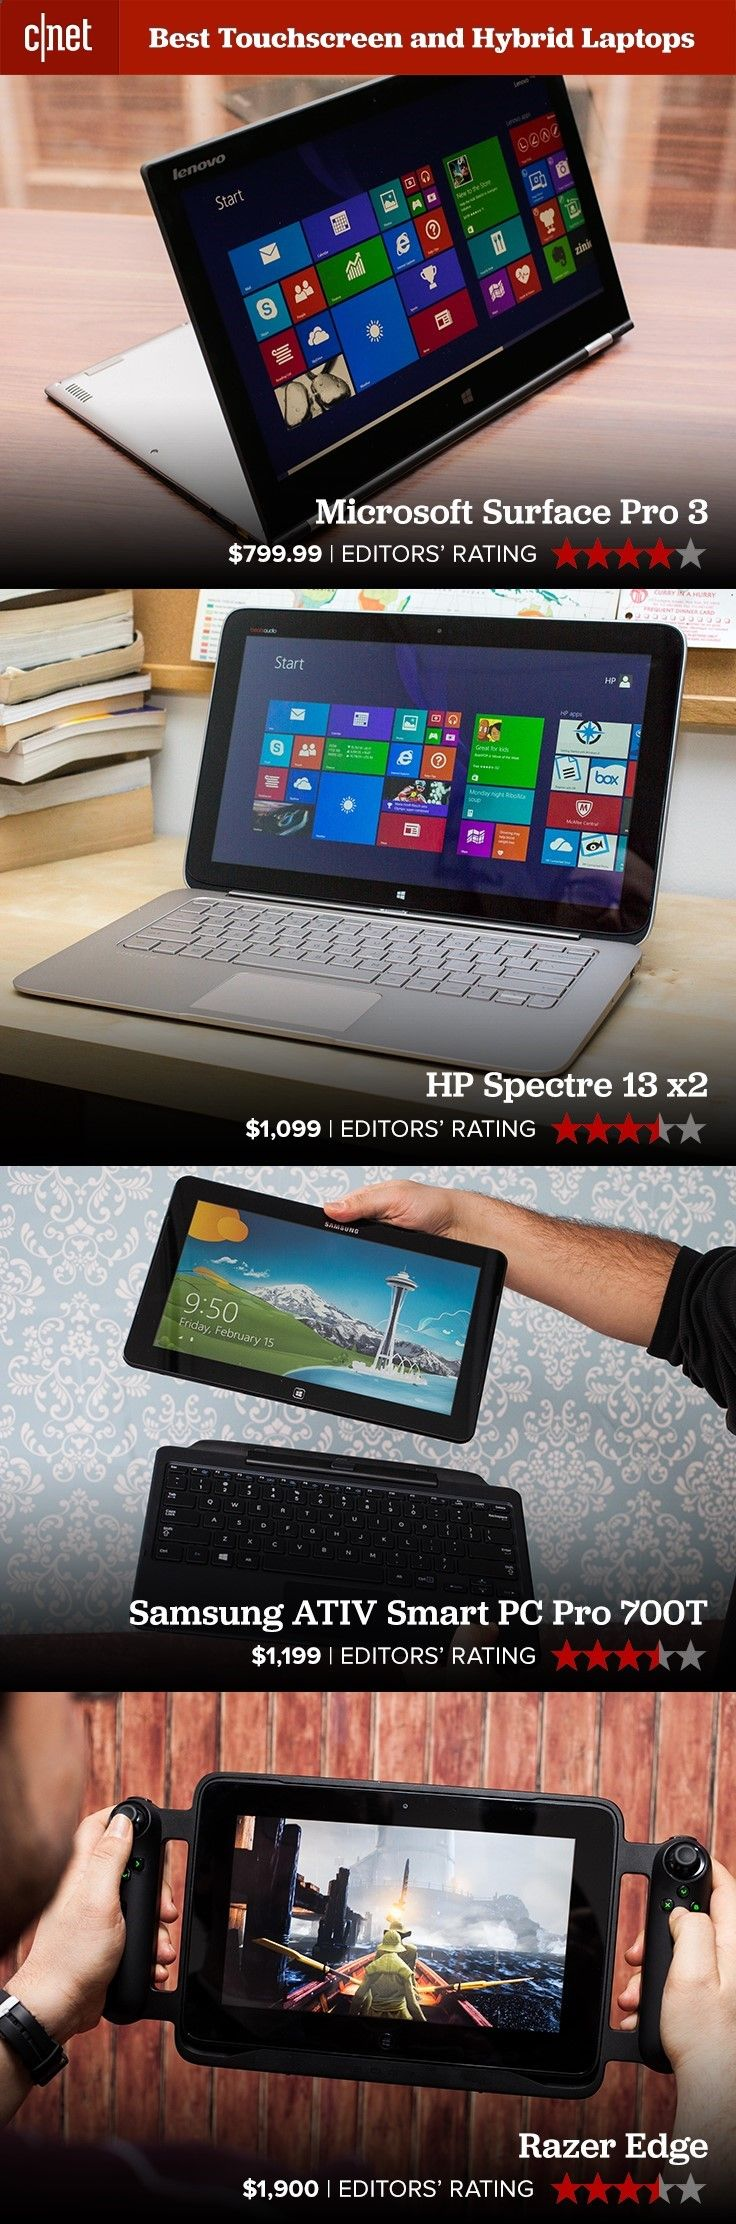 Ultrabook Laptops - Ultrabook Laptops - If youre interested in touchscreen laptops, you might like these. The Surface Pro 3 is Microsofts flagship tablet / laptop hybrid. If you choose the HP Spectre 13 x2, youll get a big screen with dual batteries. The Samsung ATIV Smart PC Pro 700T is an ultrabook that pops its top to remove the screen from the keyboard. Finally, the Razer Edge is one of the most inventive PC gaming devices in years. Check out the rest of our touchscreen and hybrid ...